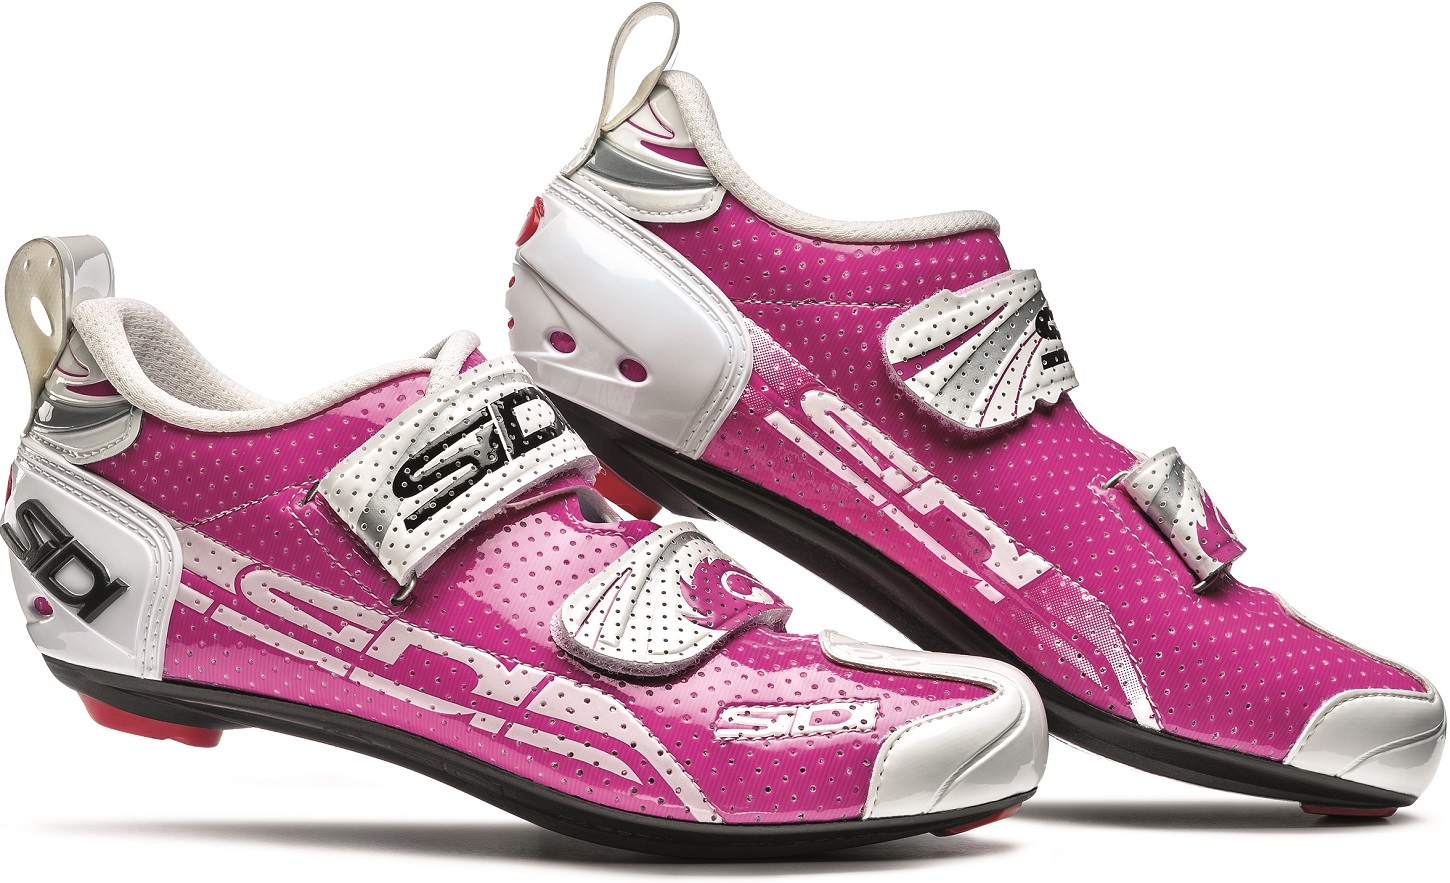 five questions to ask at pink sidi cycling shoes